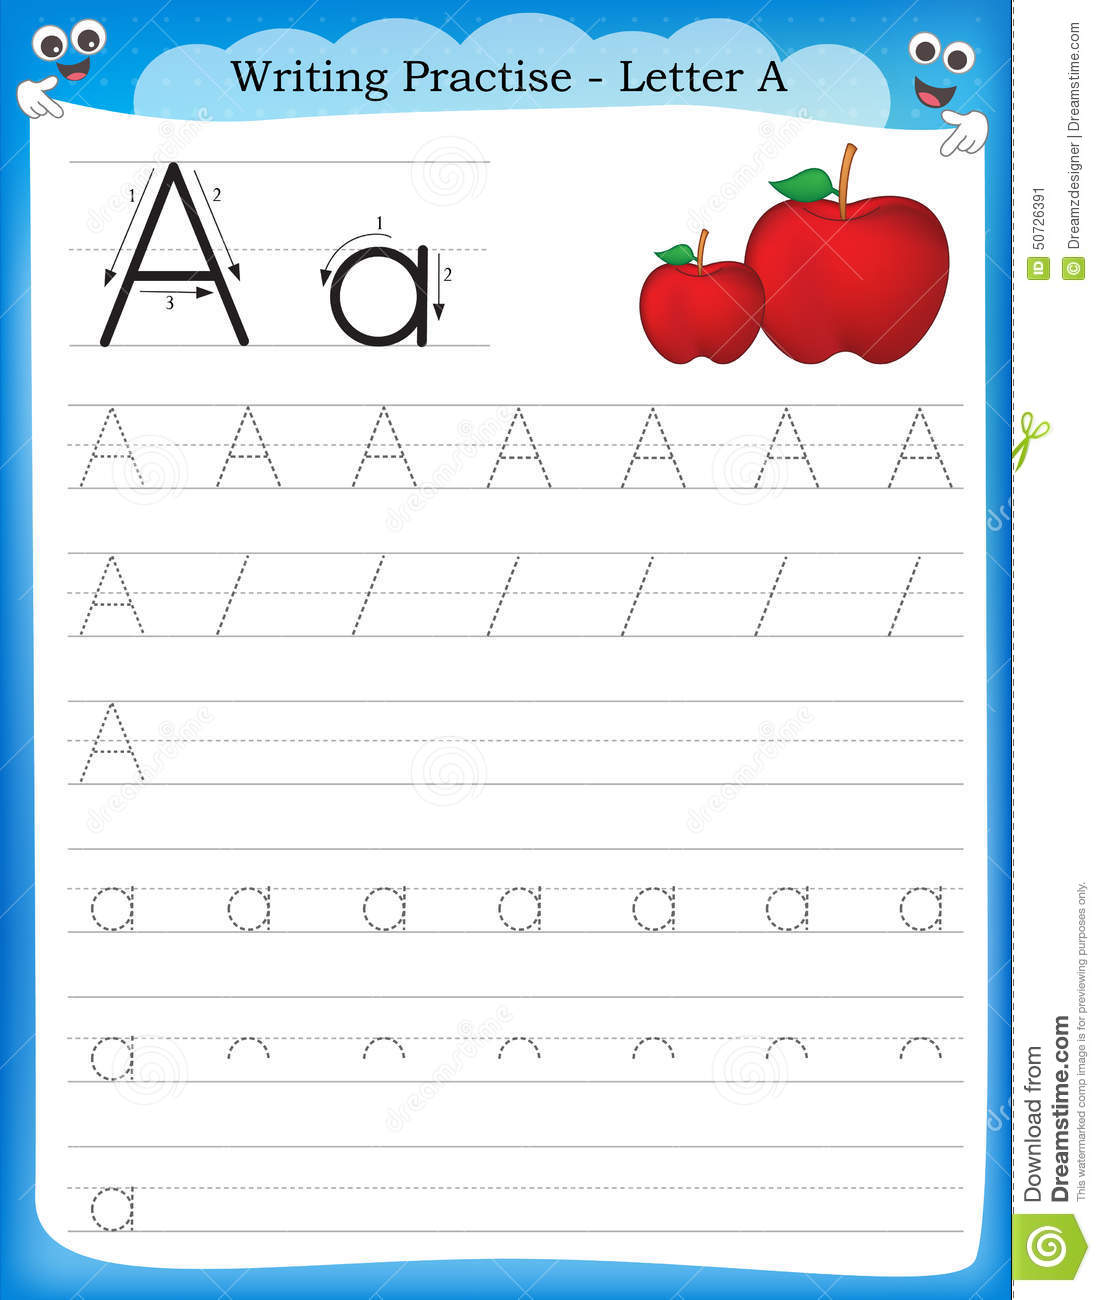 G For Ghost Worksheet For Preschool